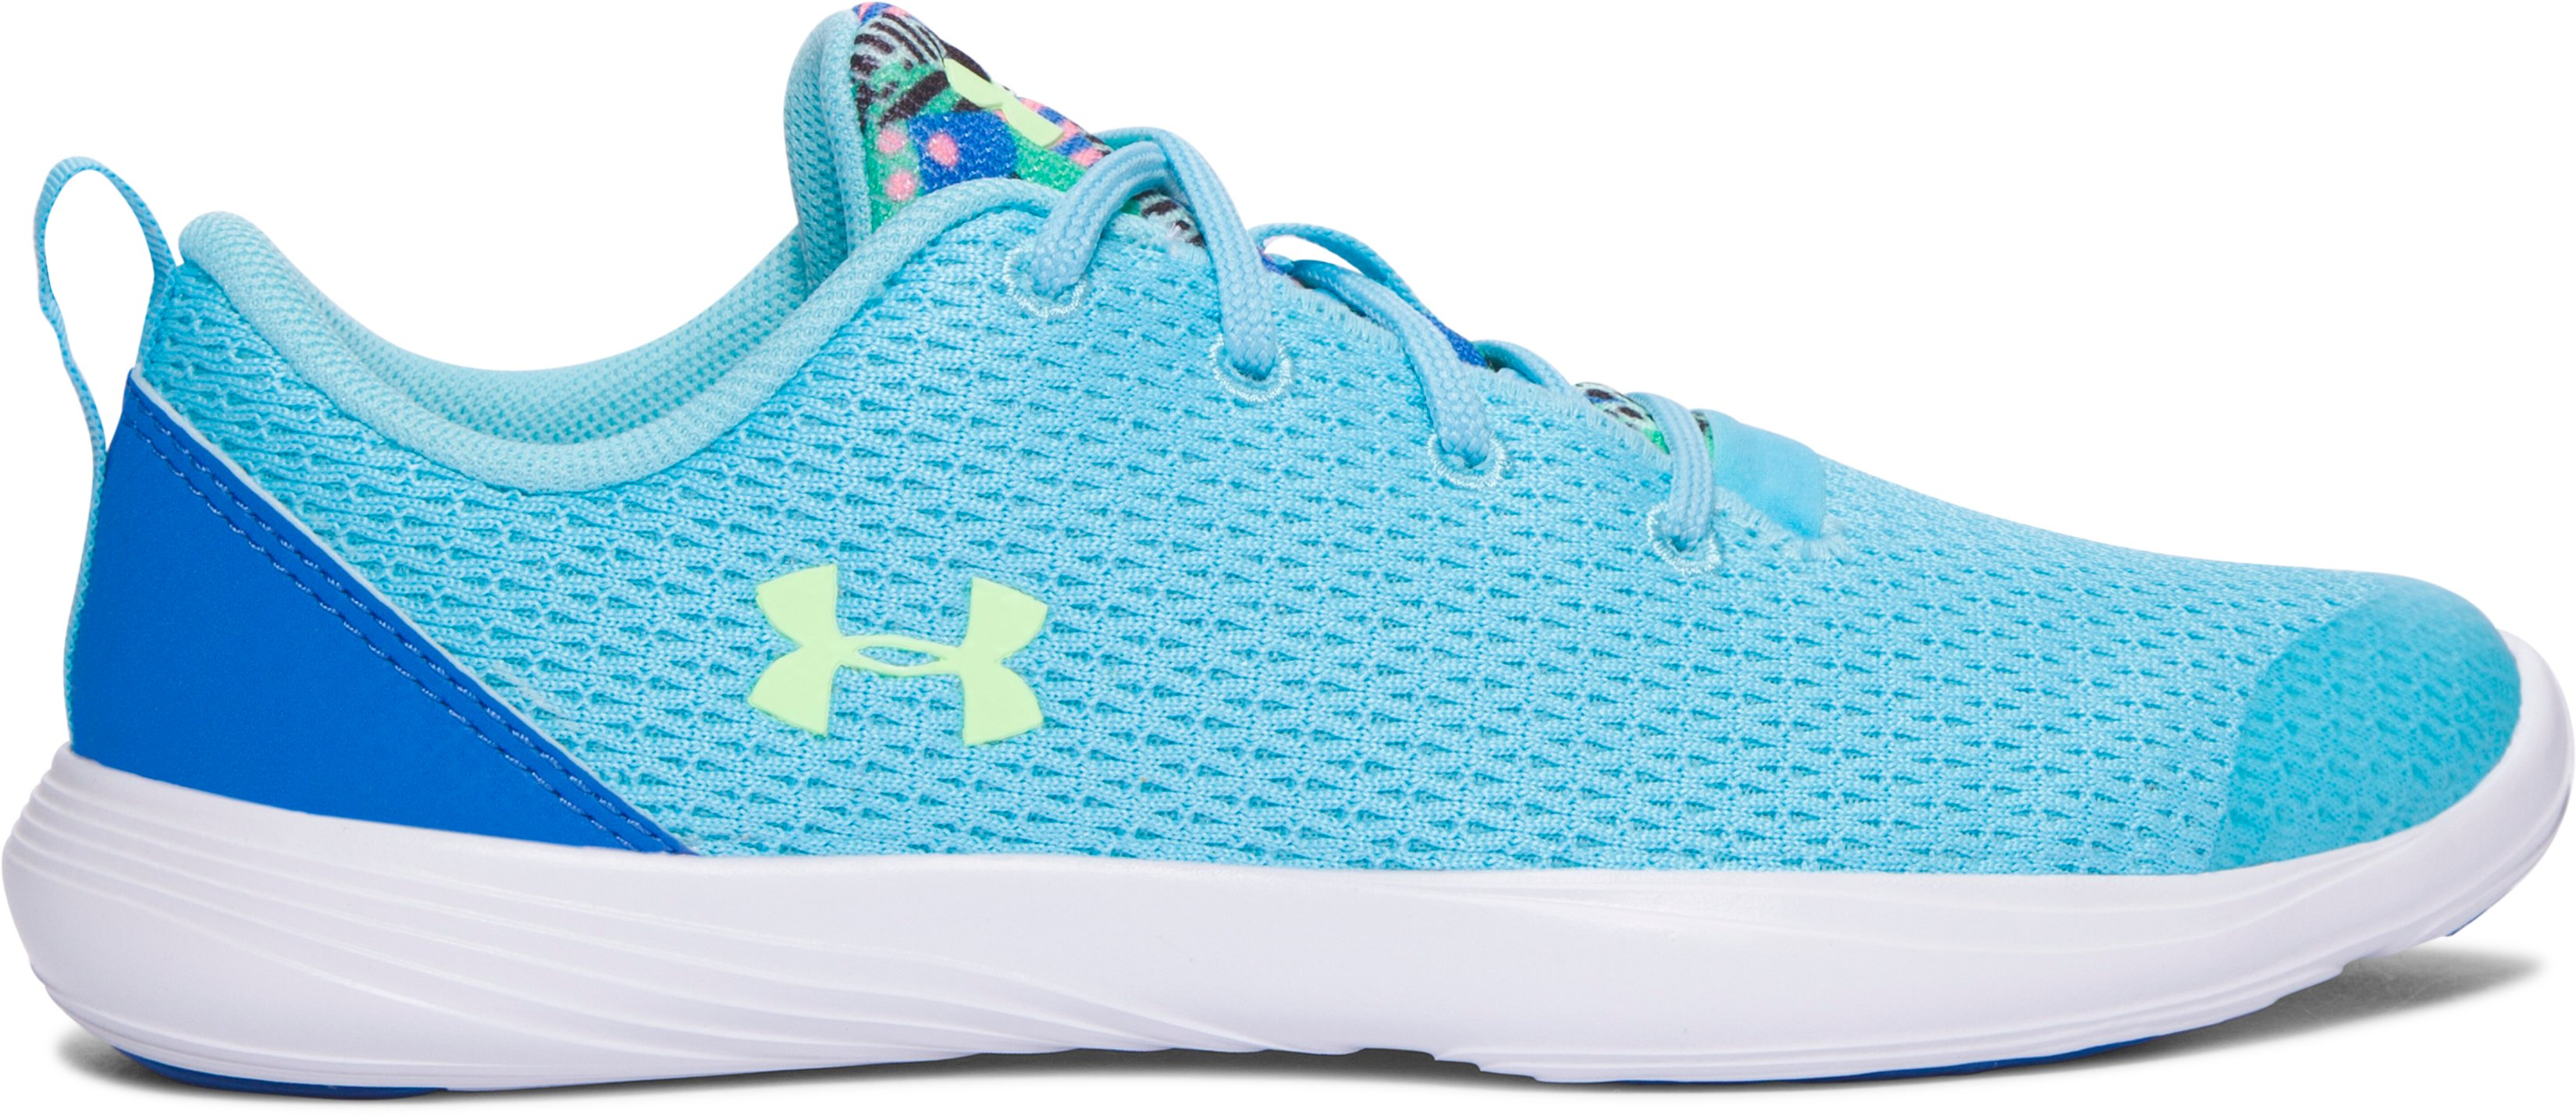 Girls' Pre-School UA Street Precision Sport Shoes, Venetian Blue